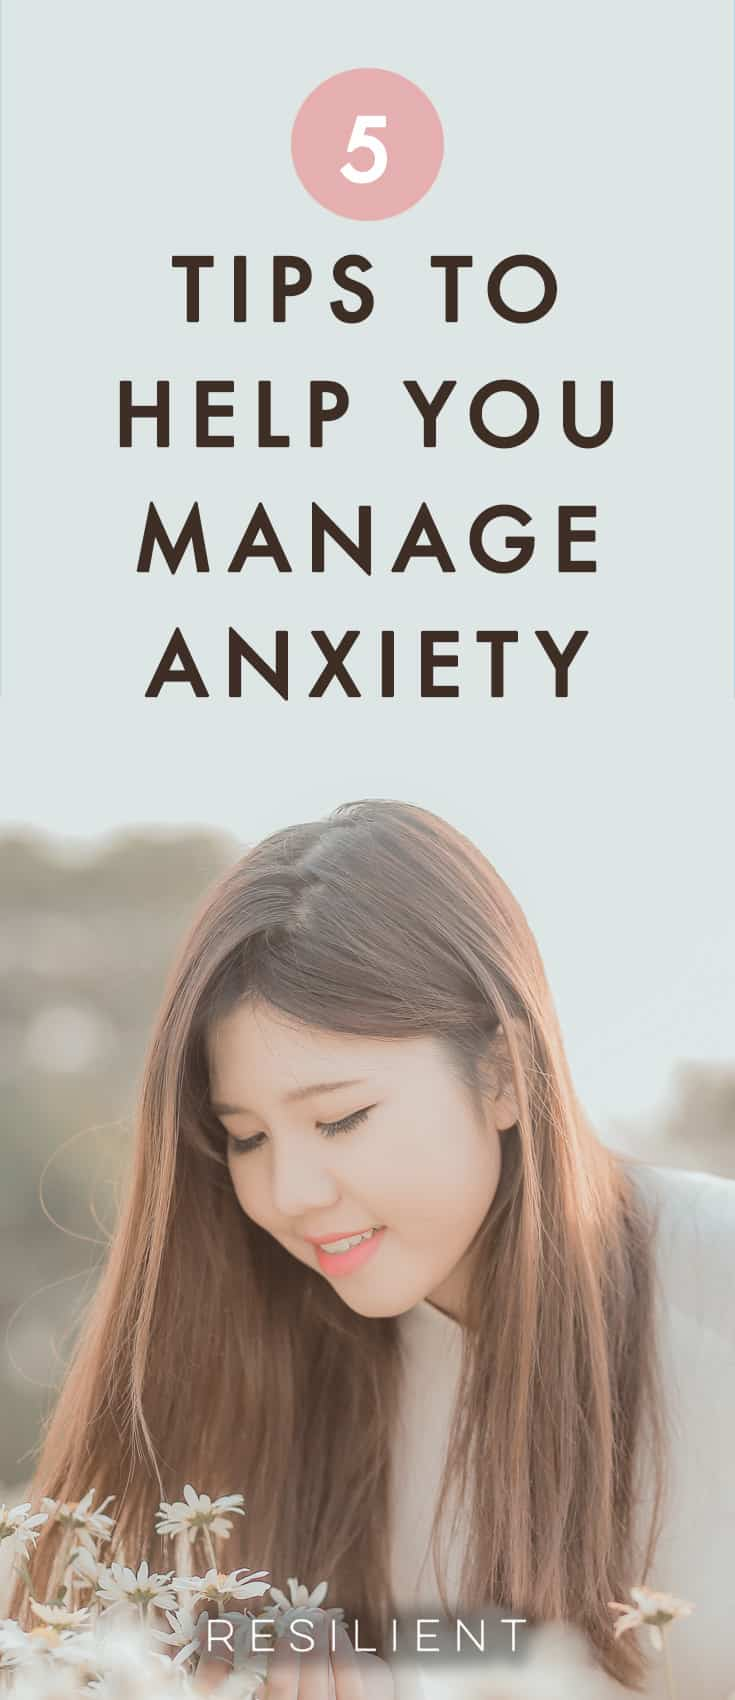 Anxiety impacts millions of people all around the world, and sometimes it increases with age and the burden of more responsibilities. What you may not realize is how common anxiety issues are, and how simple tools can be used to help bring back control and happiness to your life. Here are 5tips that will help you manage anxiety and keep you from spiraling into despair.